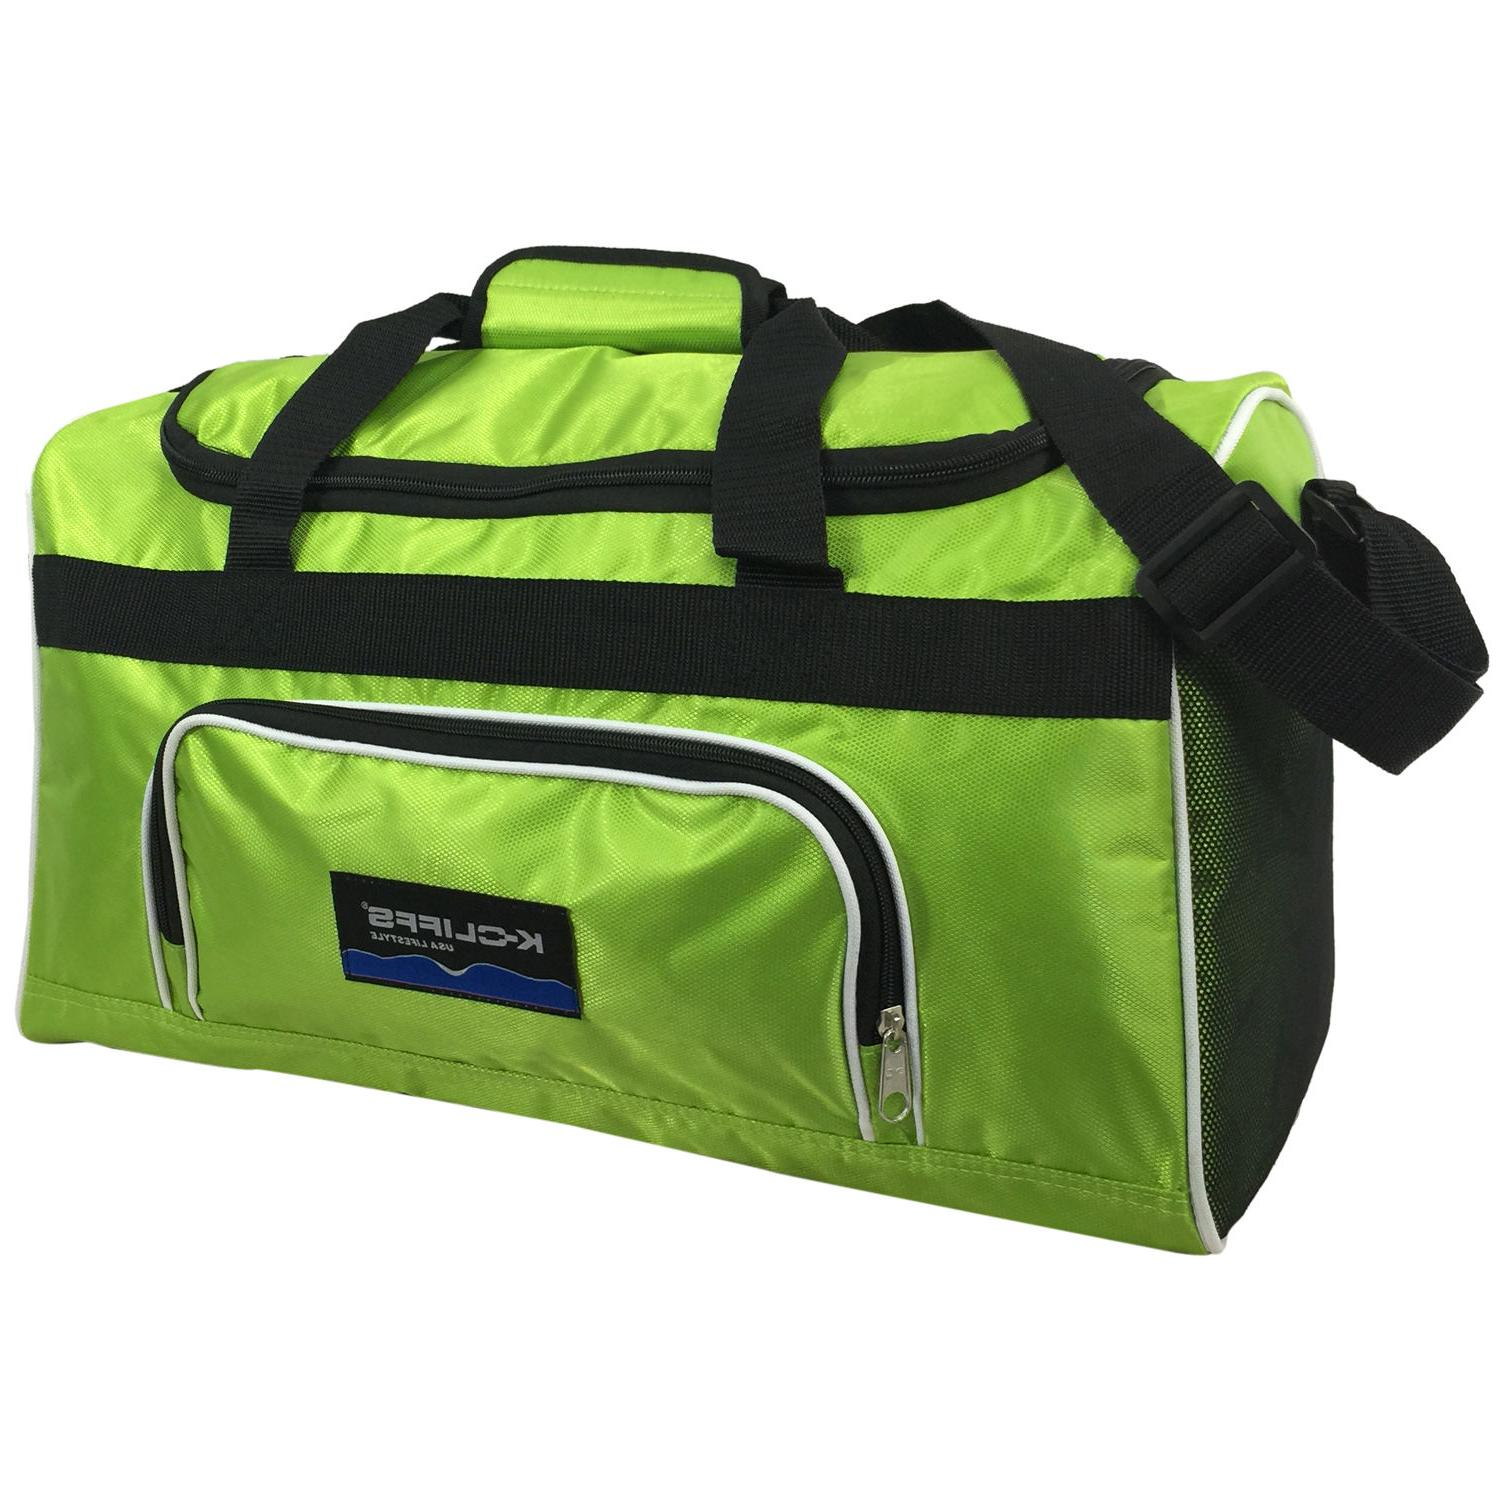 Gym Bag Quality Sport Equipment Gear Bags Travel Duffel Tote